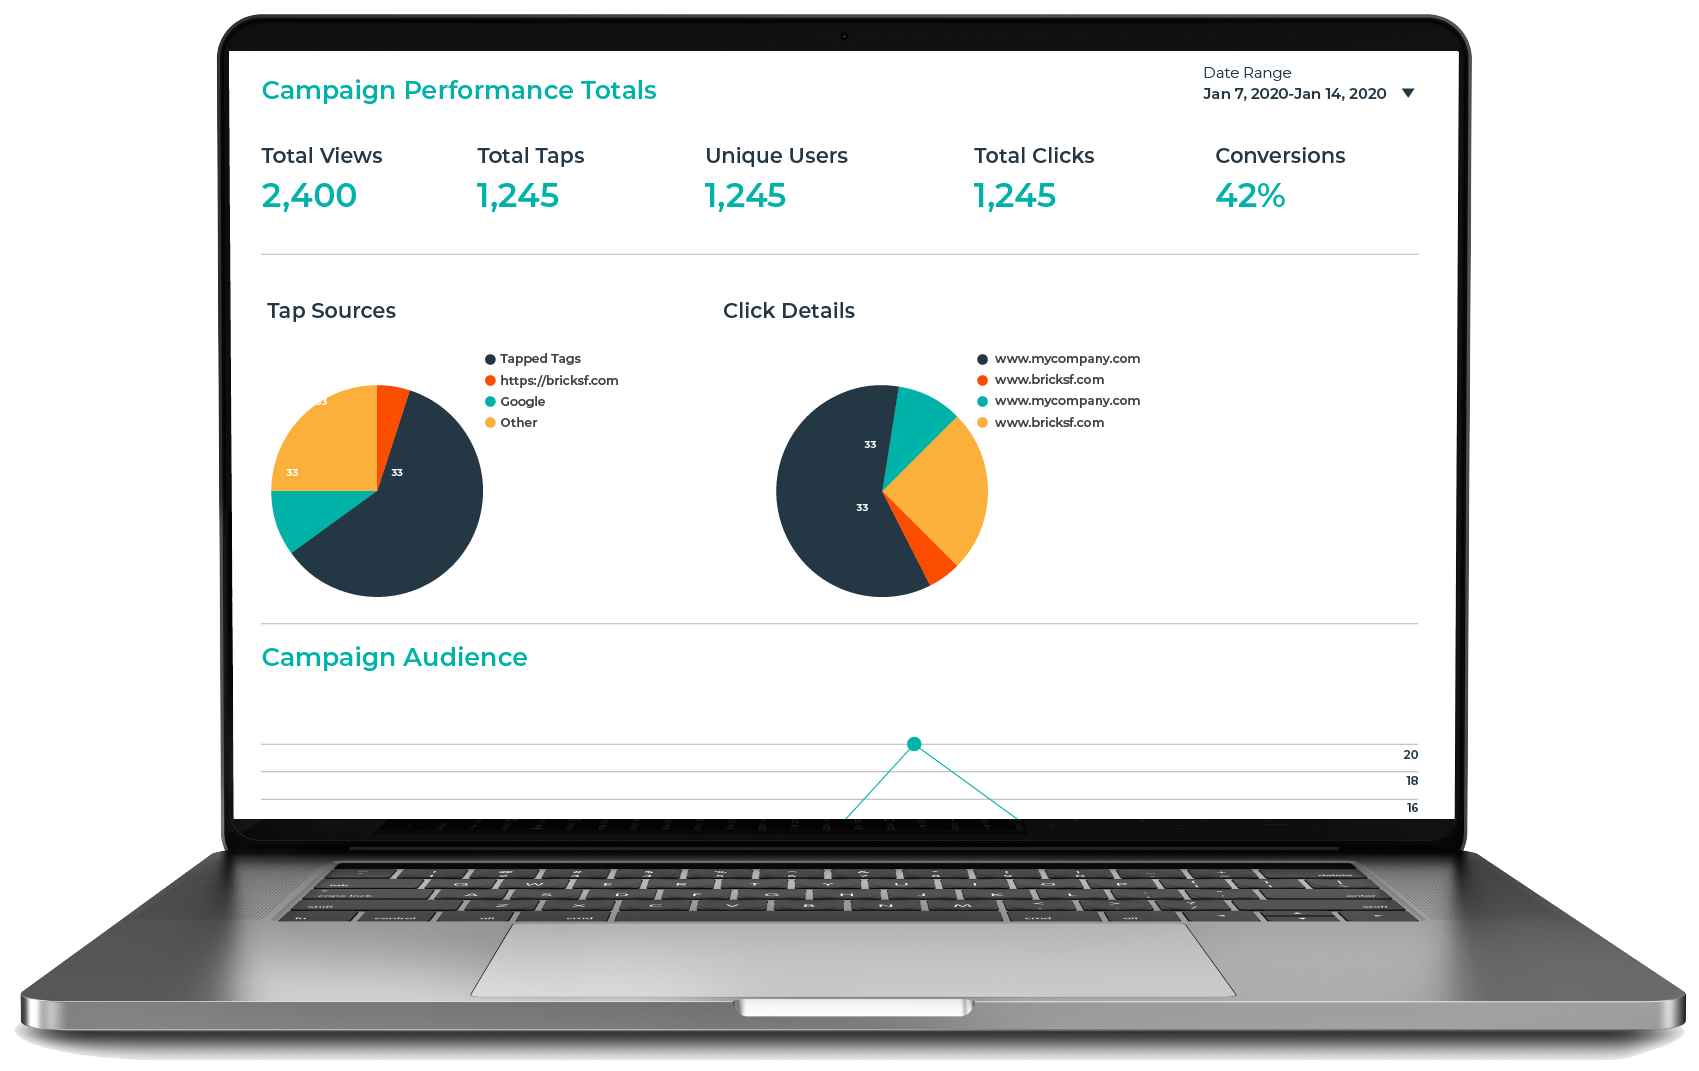 Laptop, Real-time Campaign Performance Analytics forNFC experiential marketing,digital experience landing pages